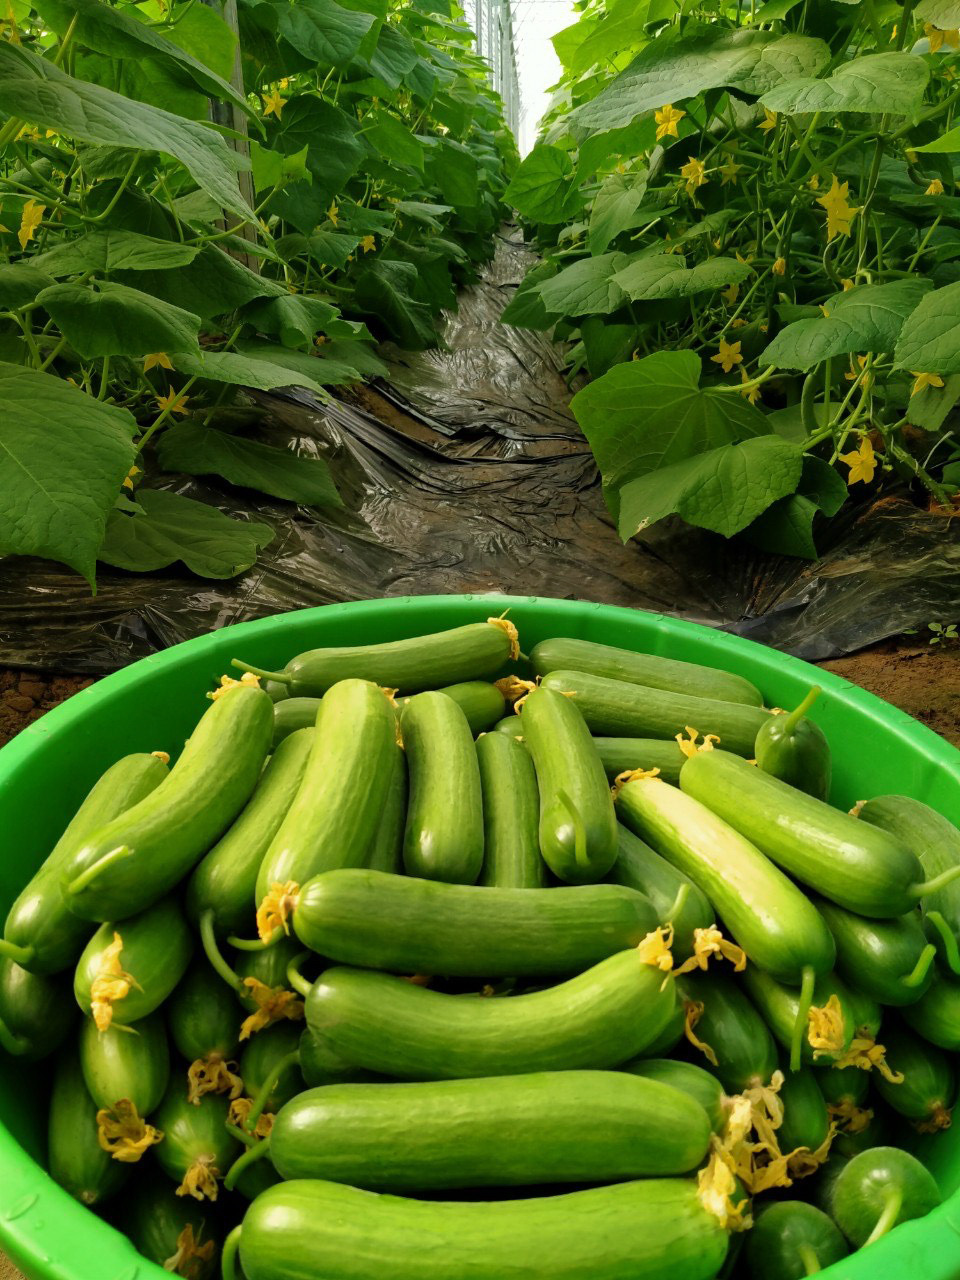 Cucumbers grown in net houses provide outstanding productivity. Harvested cucumbers are seen in this supplied photo.